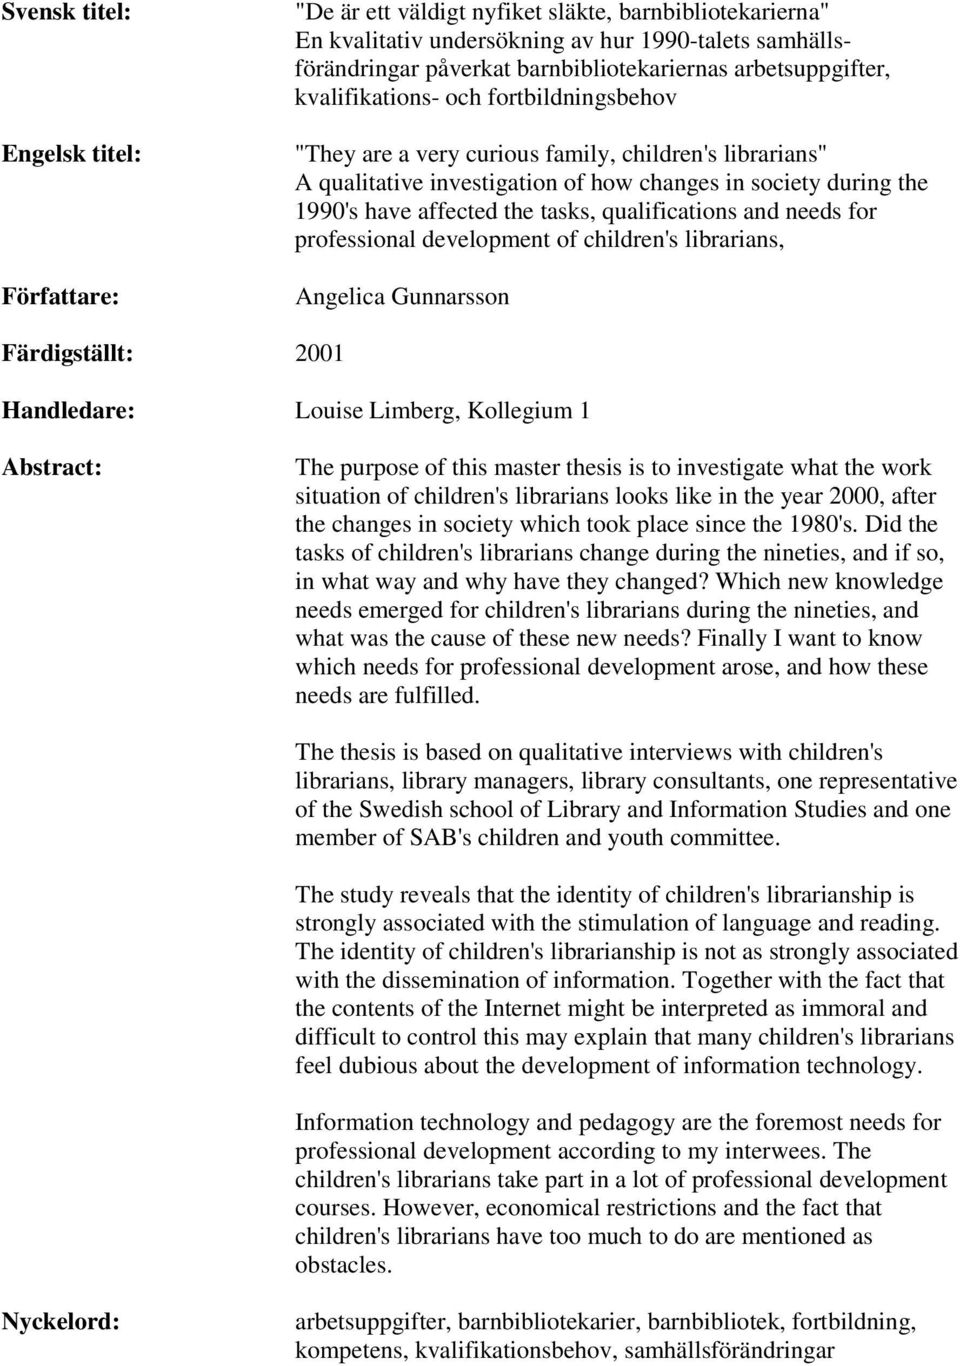 the tasks, qualifications and needs for professional development of children's librarians, Angelica Gunnarsson Färdigställt: 2001 Handledare: Louise Limberg, Kollegium 1 Abstract: The purpose of this